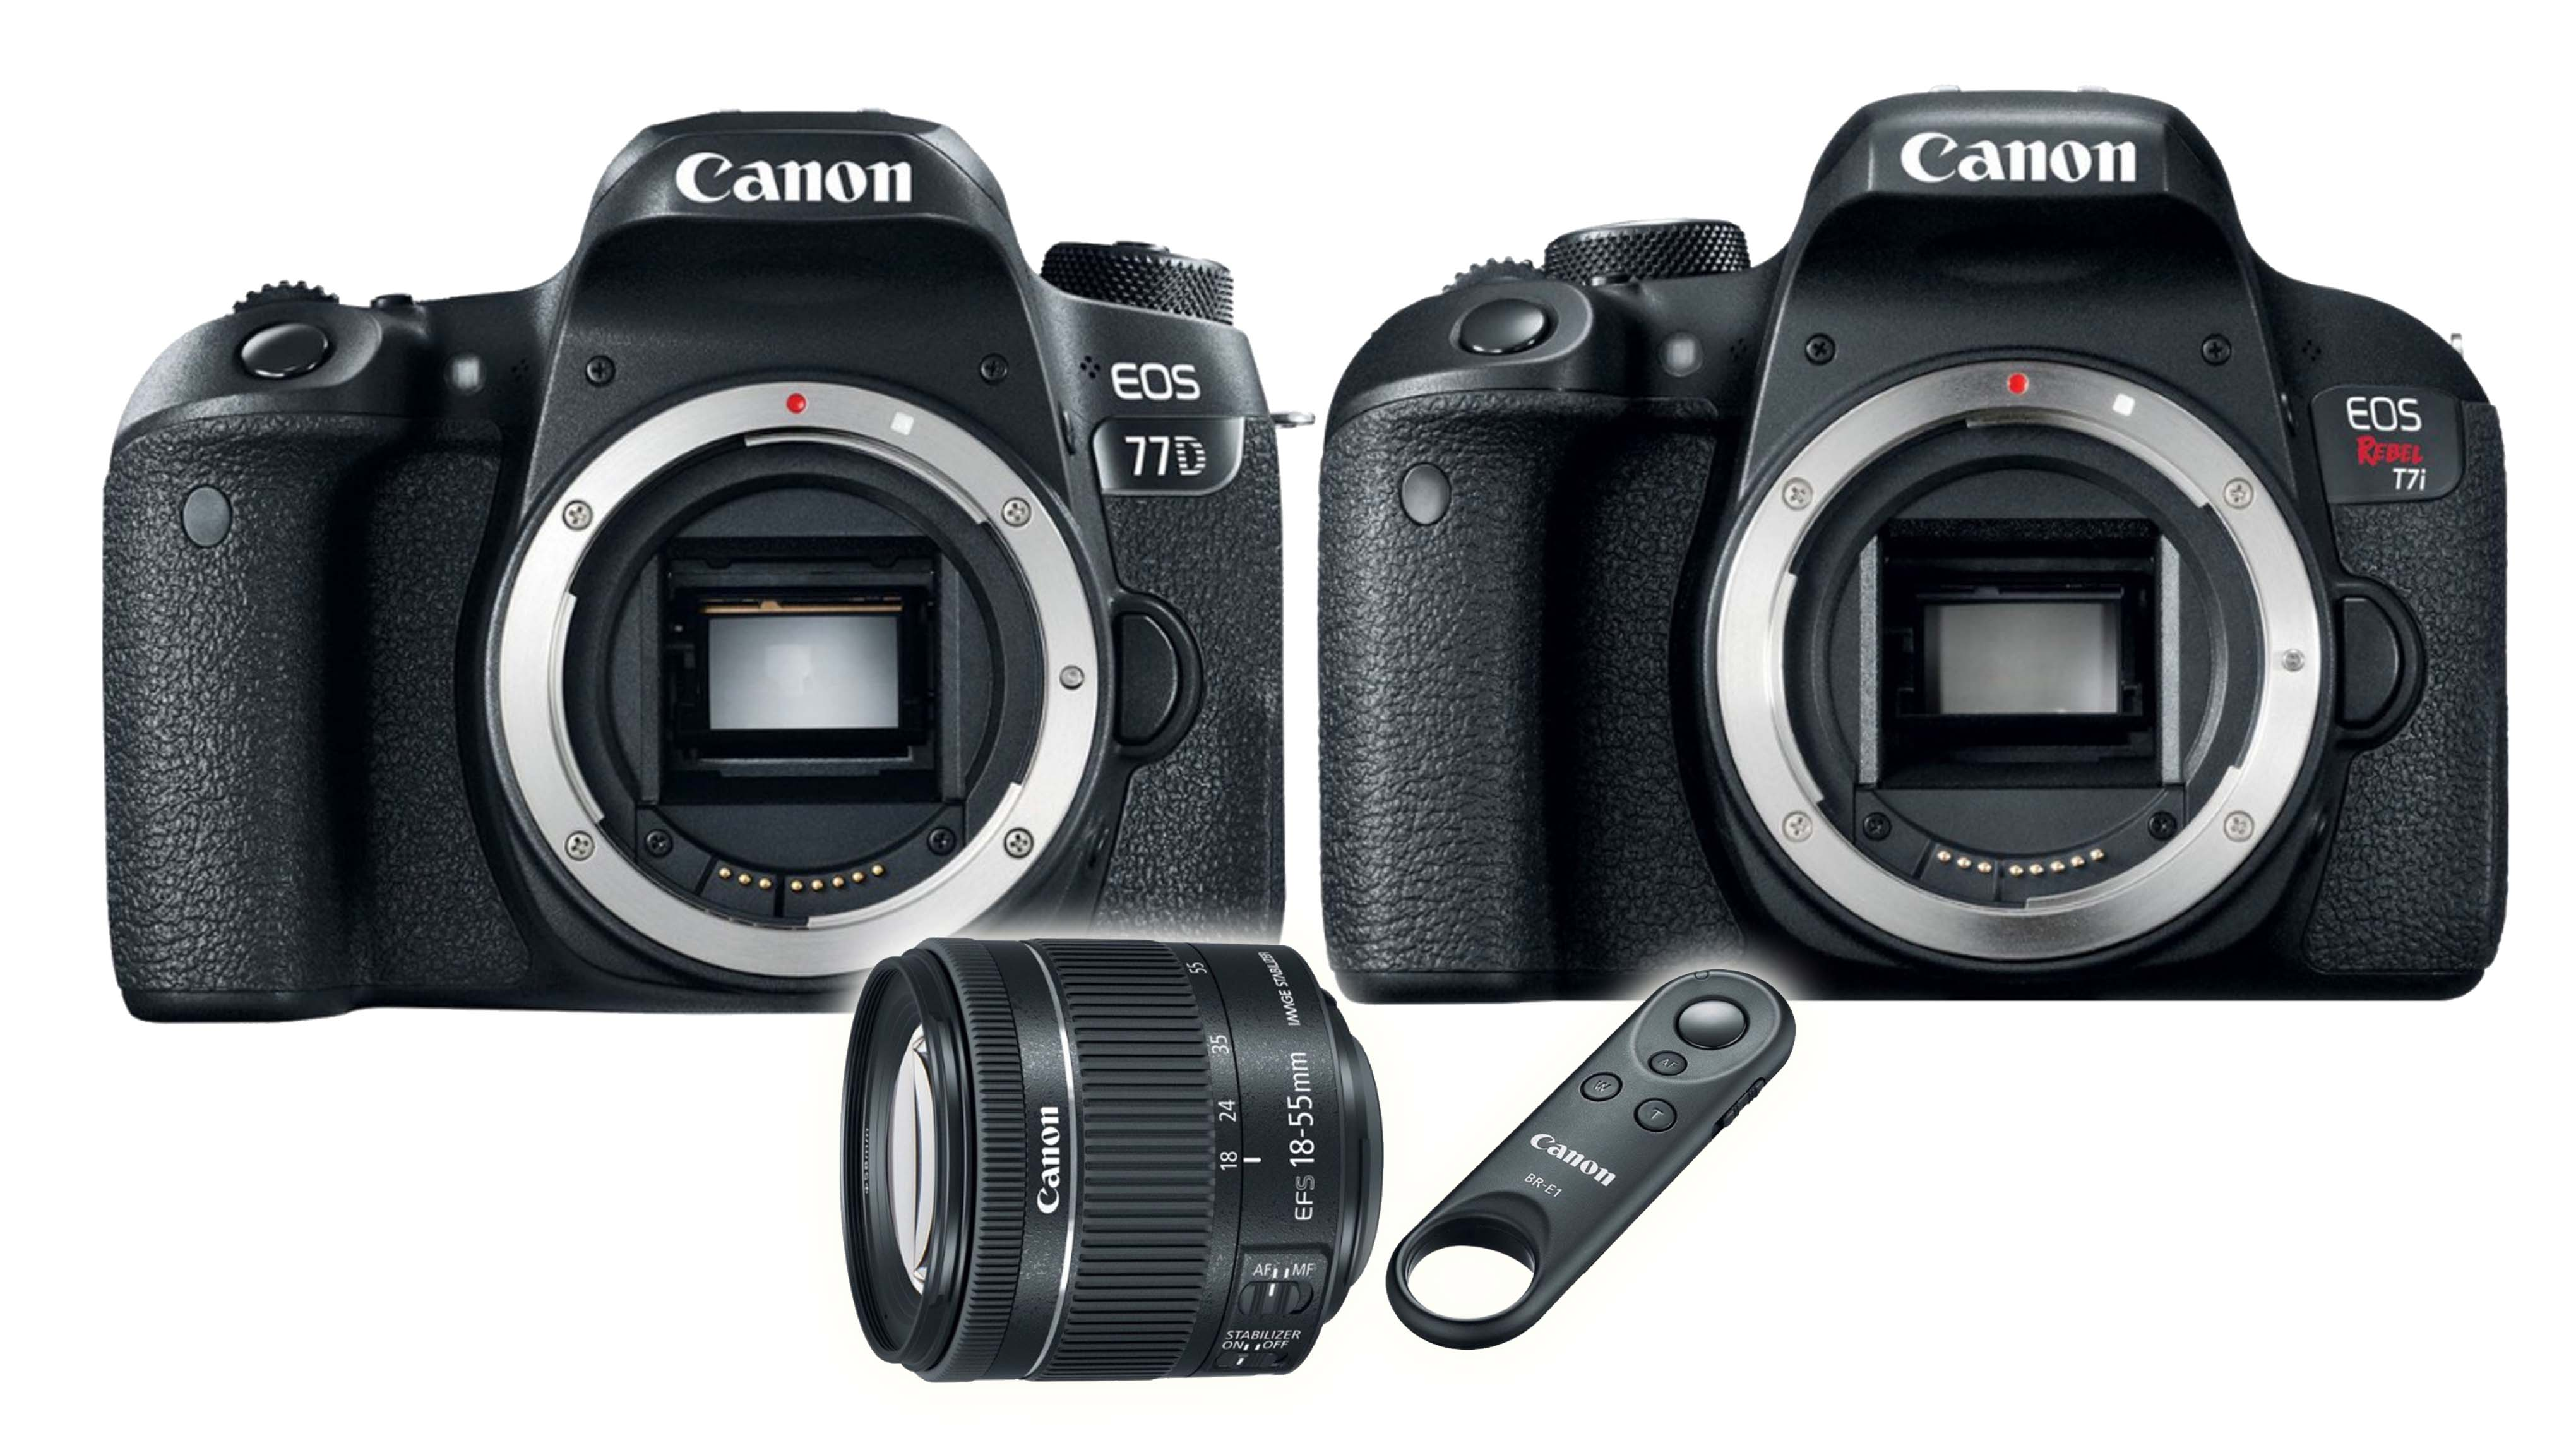 Canon Announces Two New Cameras, Lens and a Bluetooth Remote